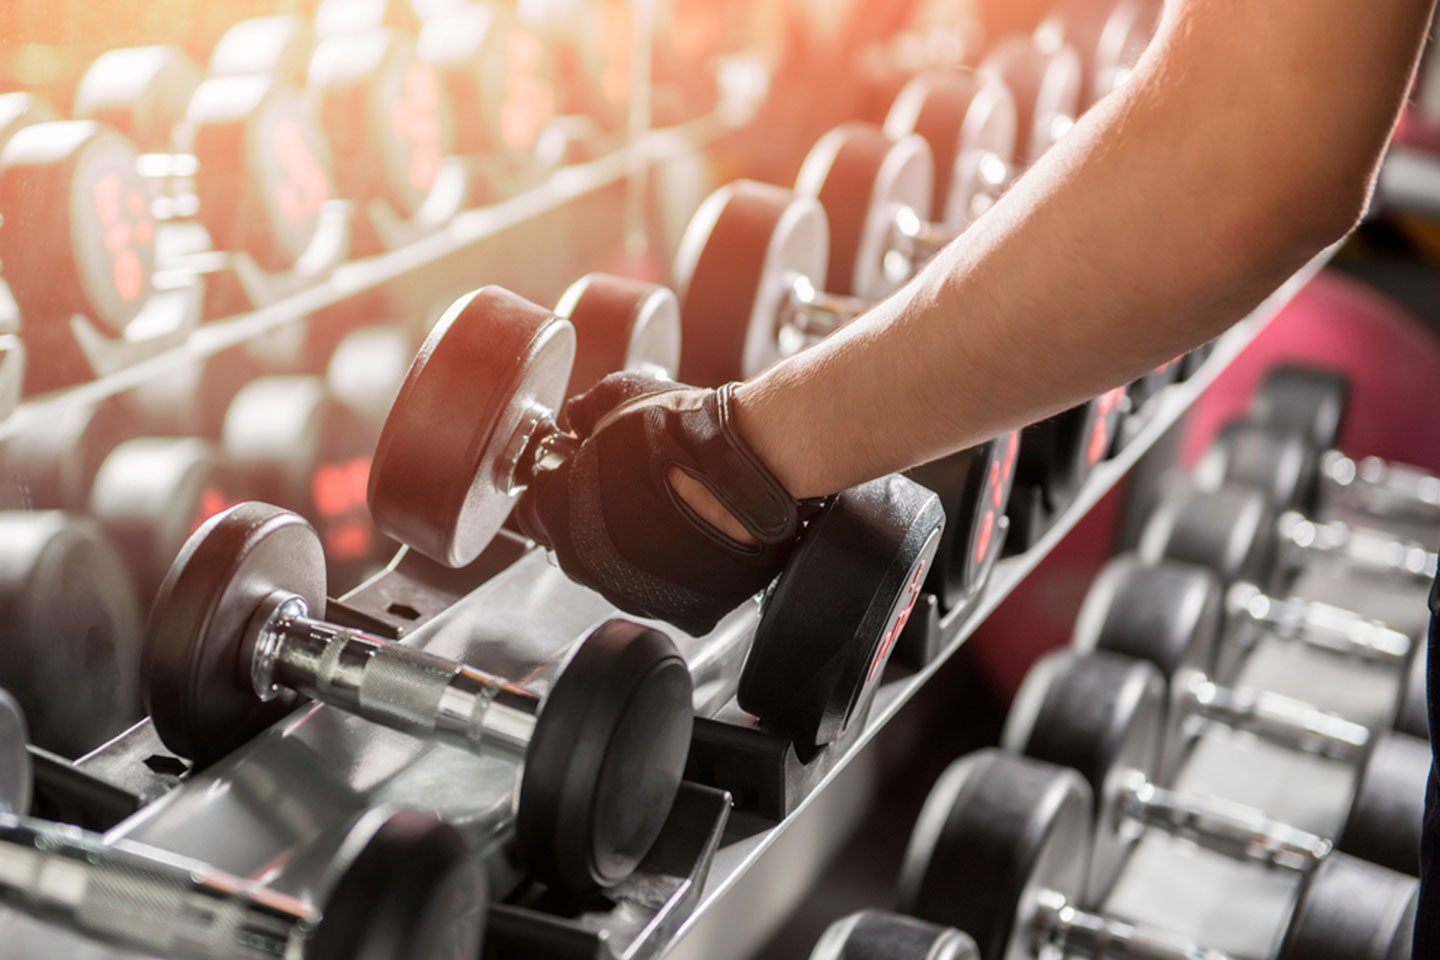 Hand Reaching For Weights In The Gym